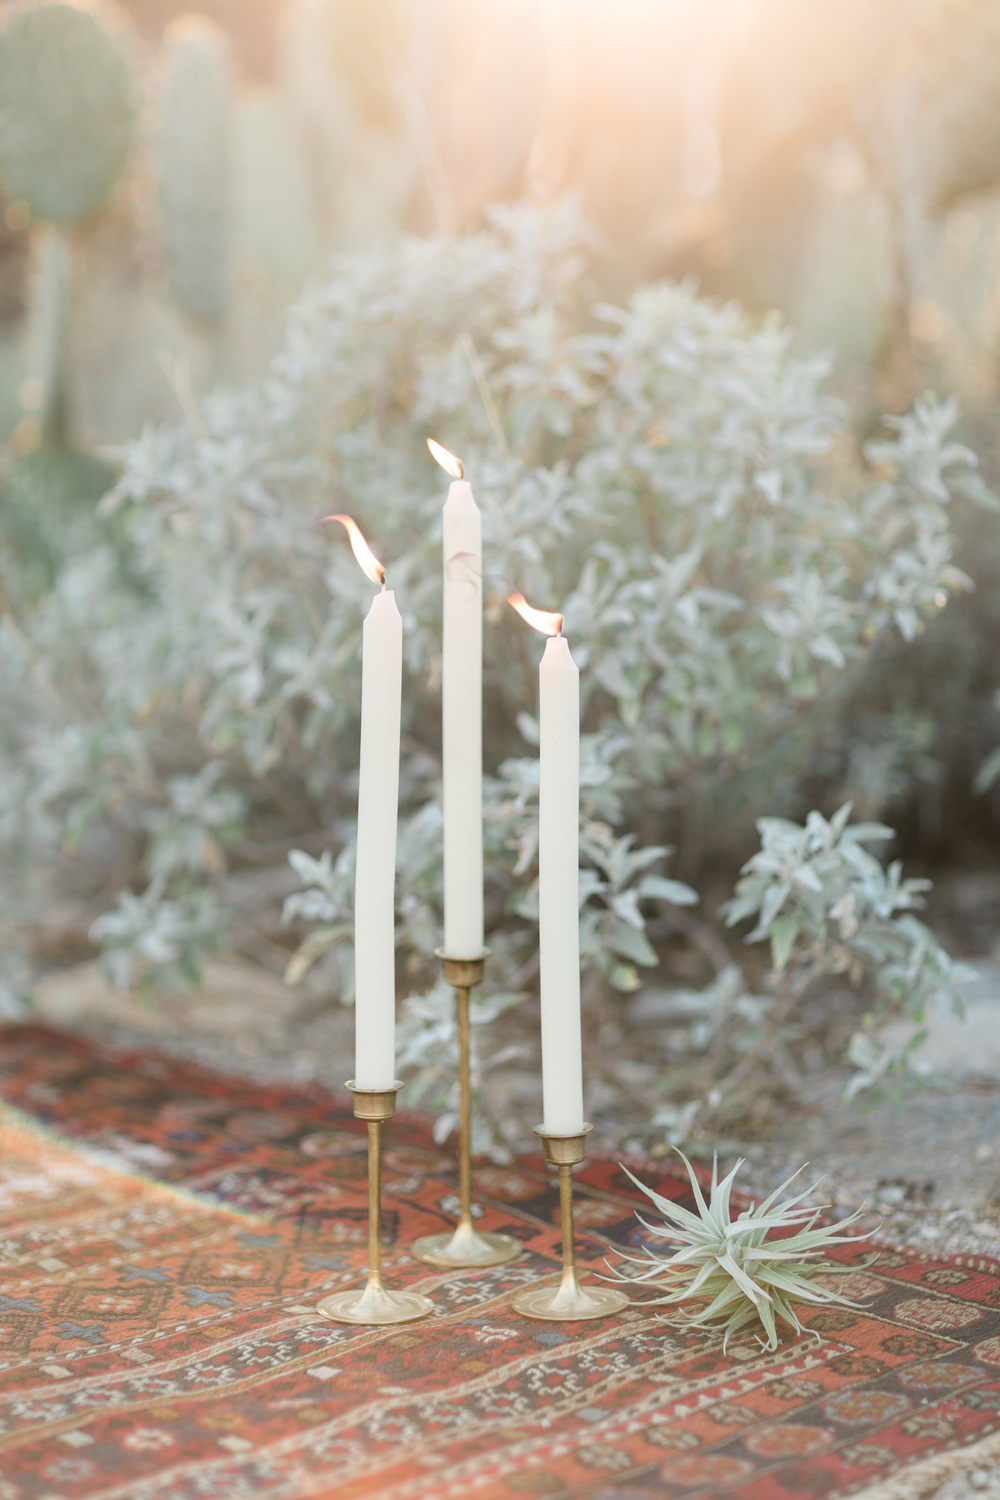 Candles and air plant on a red Turkish kilim rug